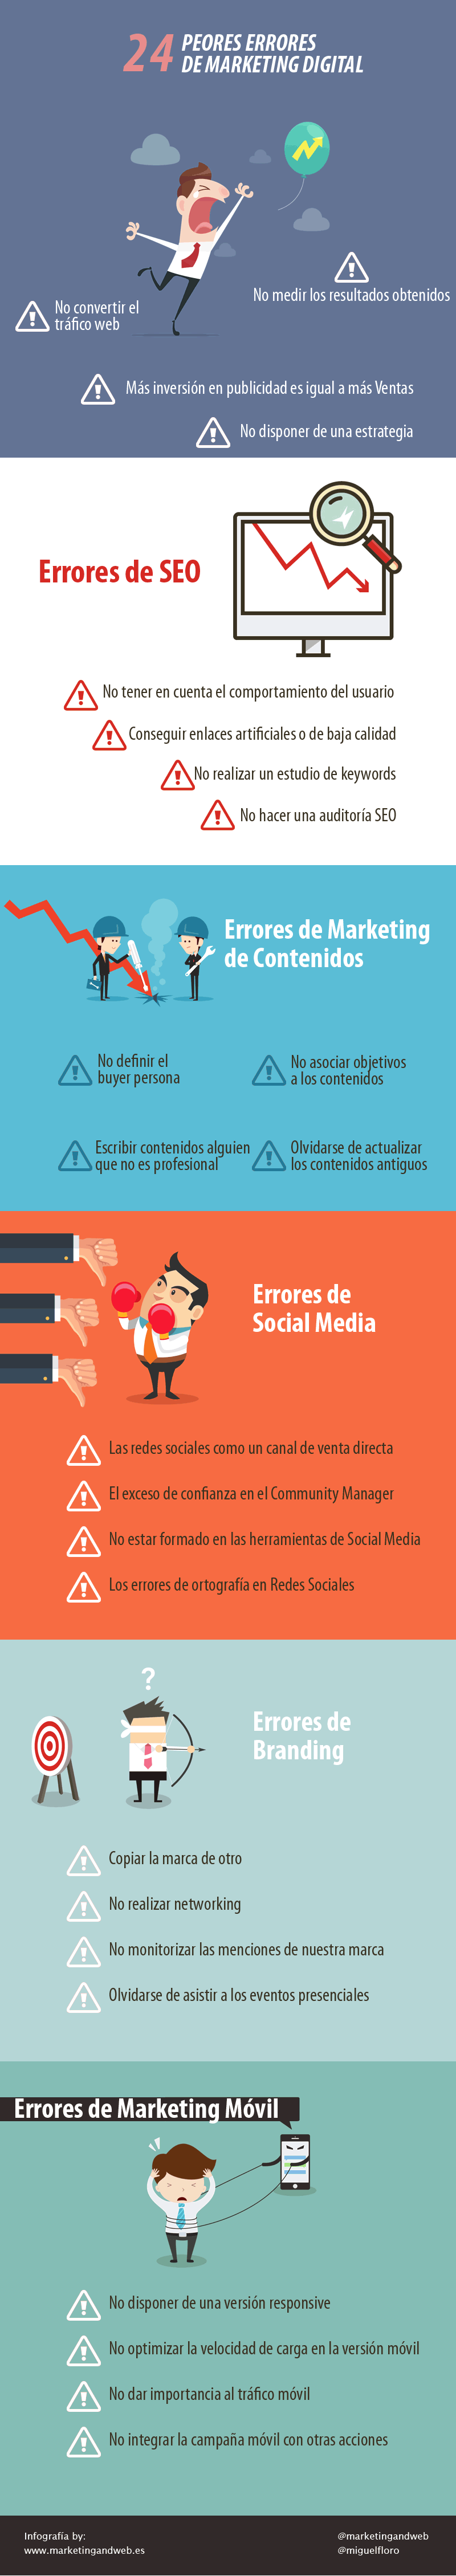 24 peores errores de Marketing Digital